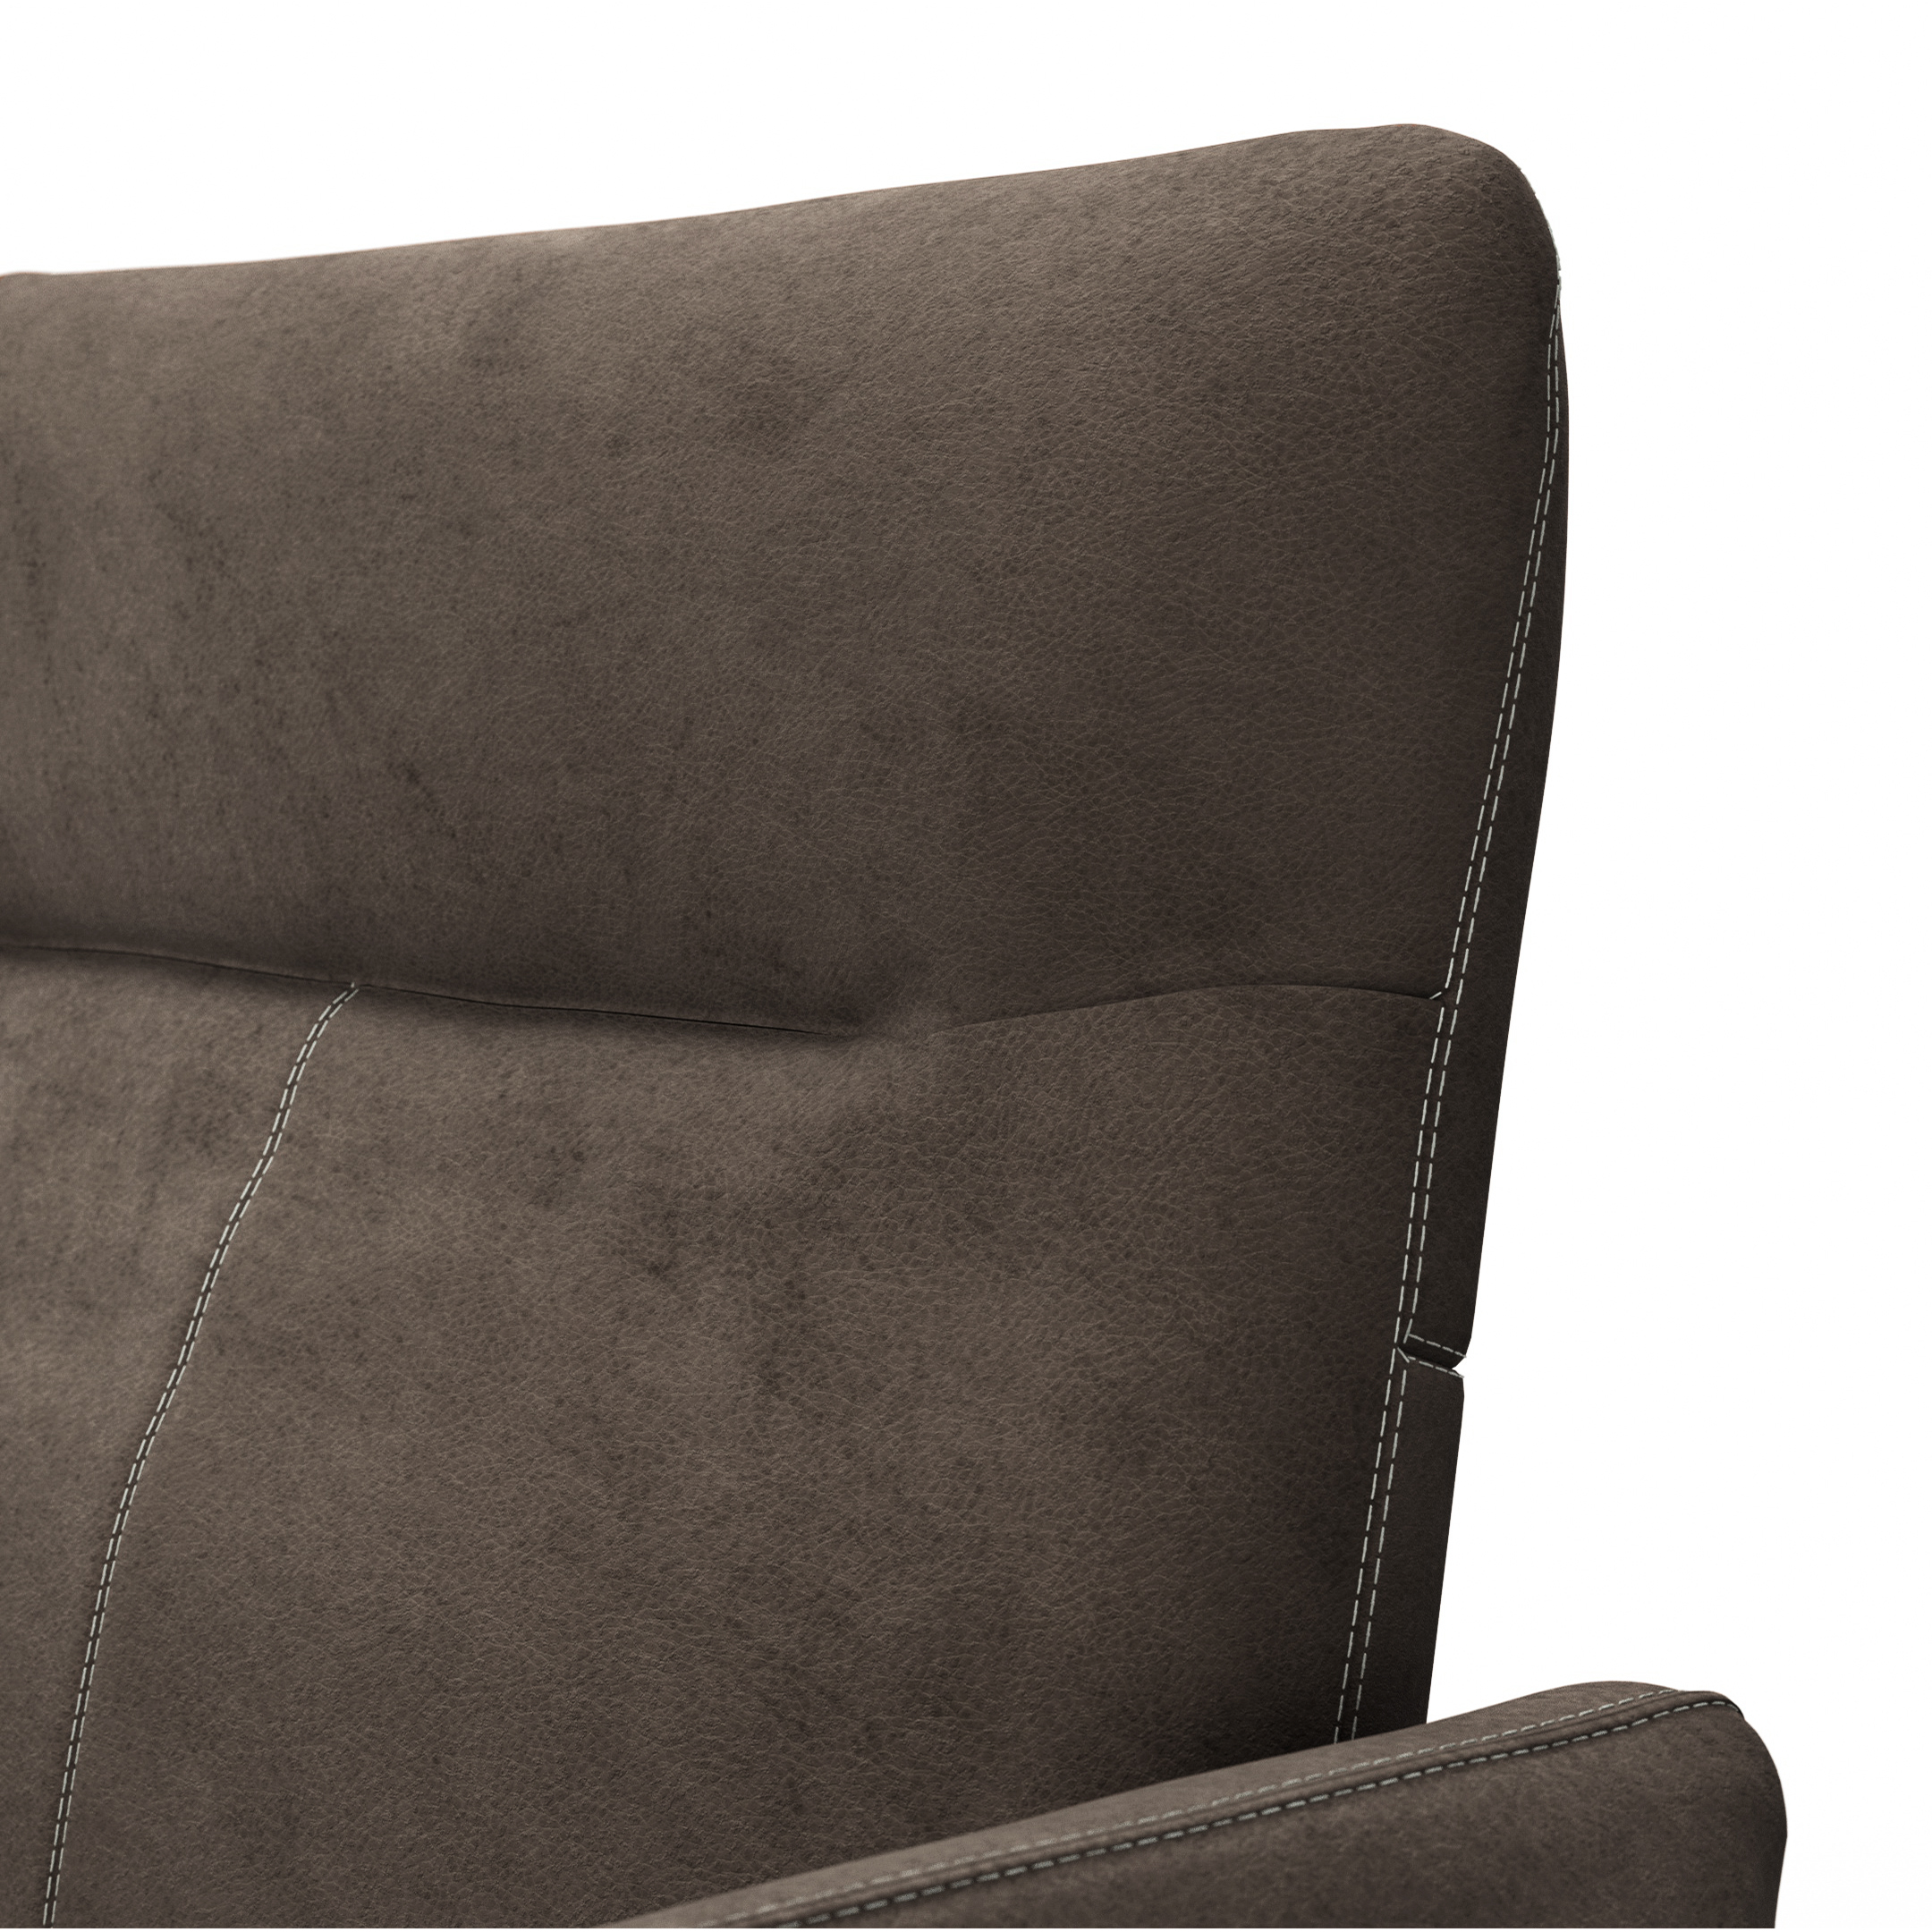 Global Comfort Sessel Rosario detailbild 2 102632 | Homepoet